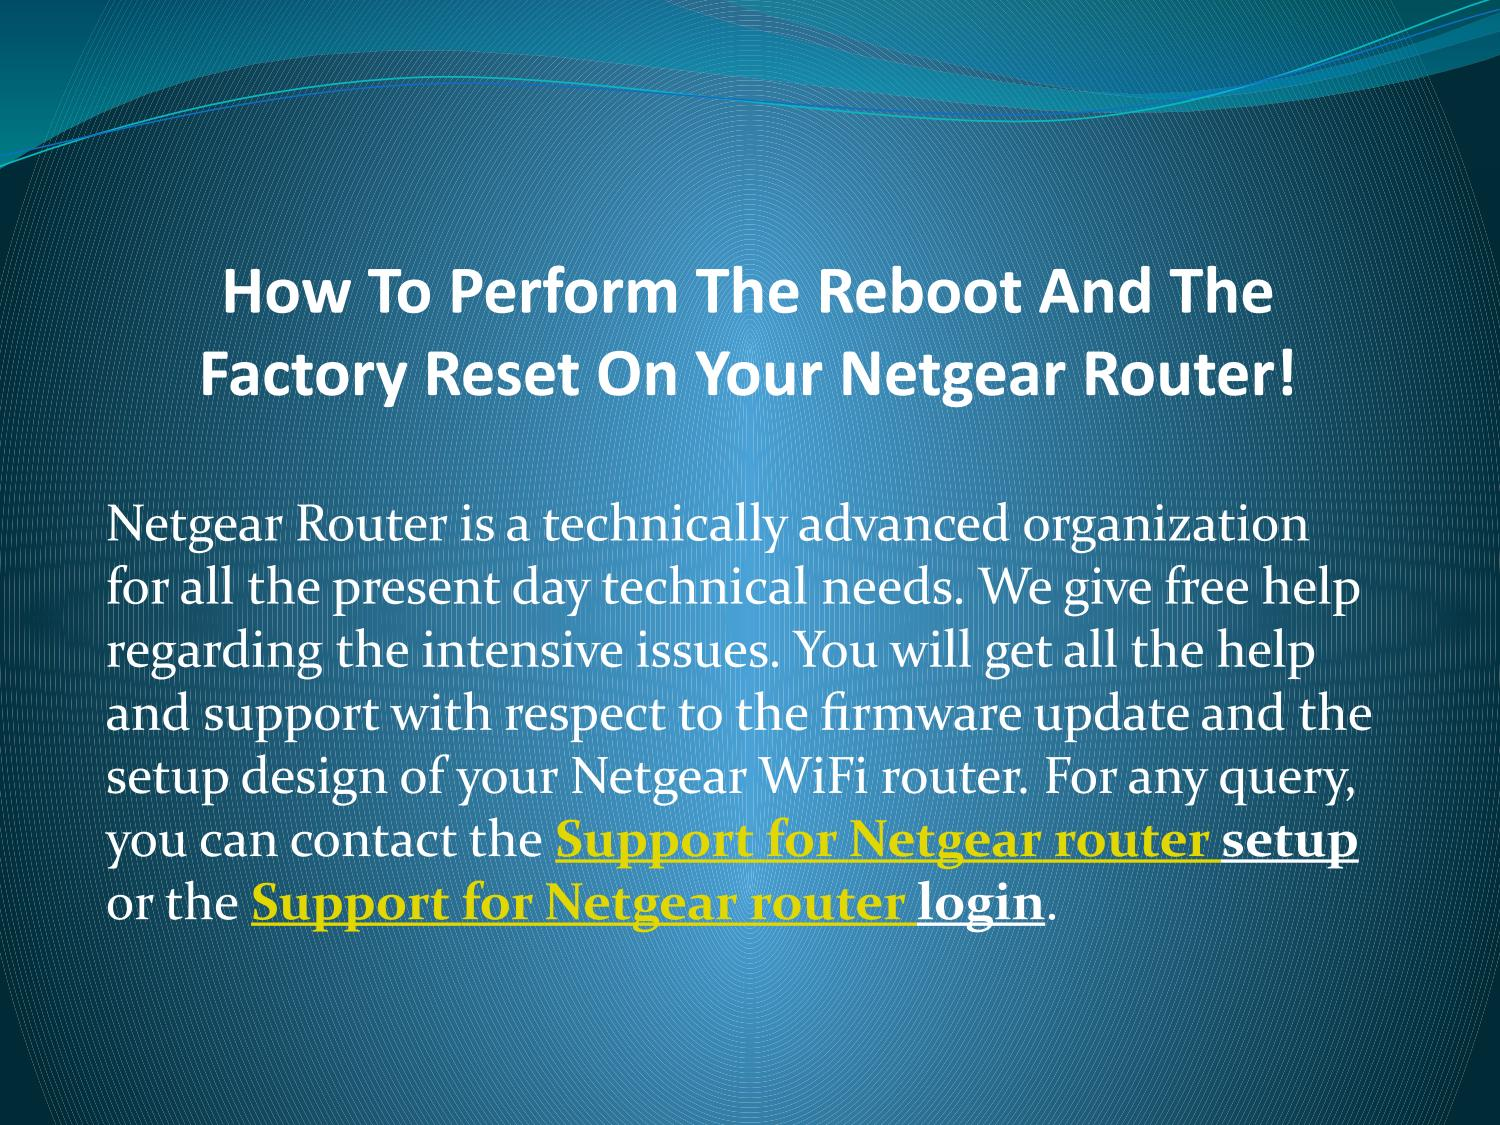 How To Perform The Reboot And The Factory Reset On Your Netgear